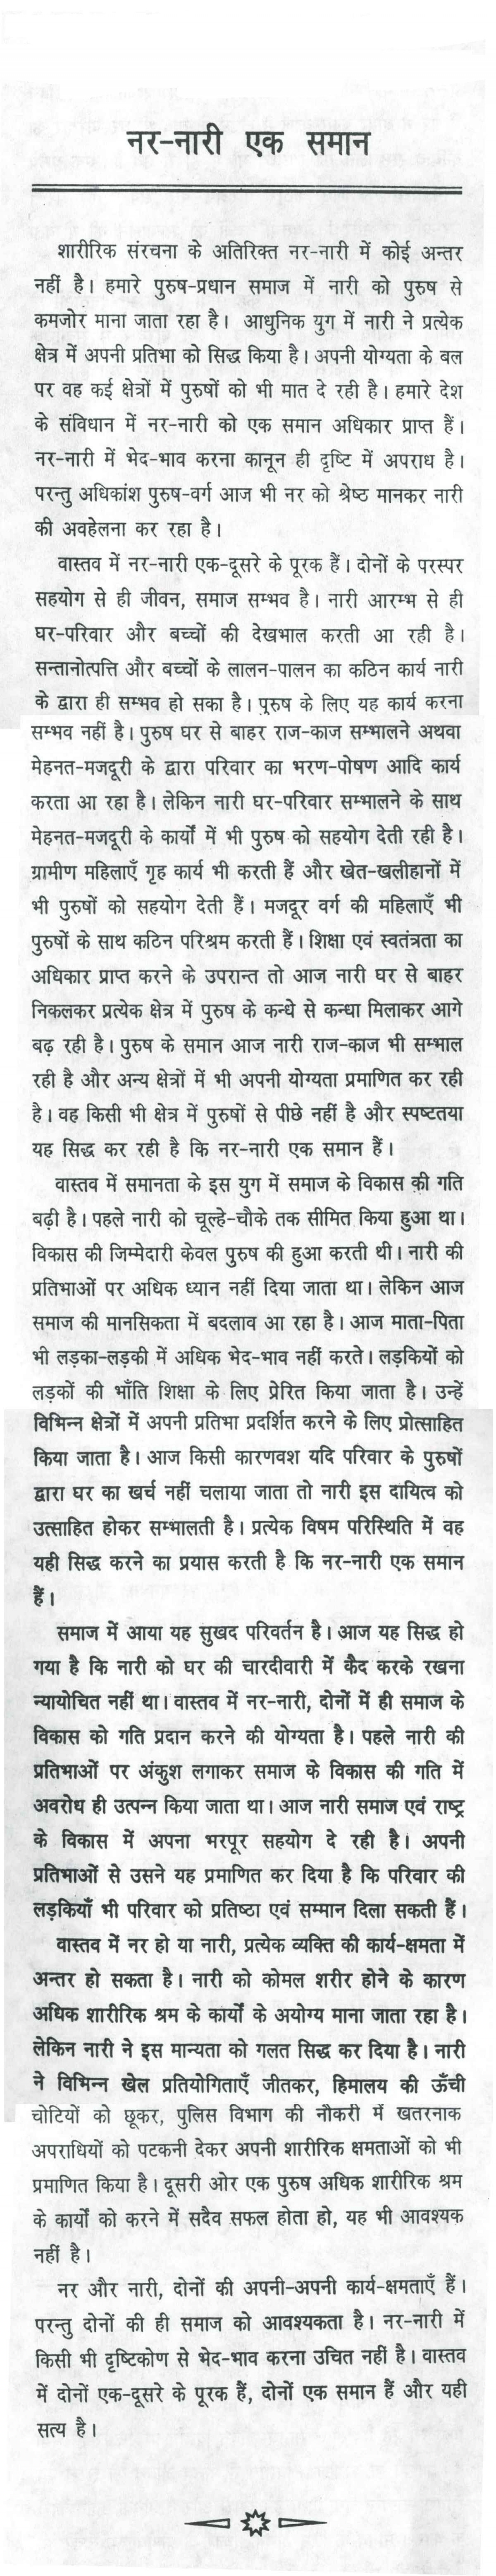 015 10059 Thumb Essay On Women Incredible Education Women's Rights In India Hindi Health 1920